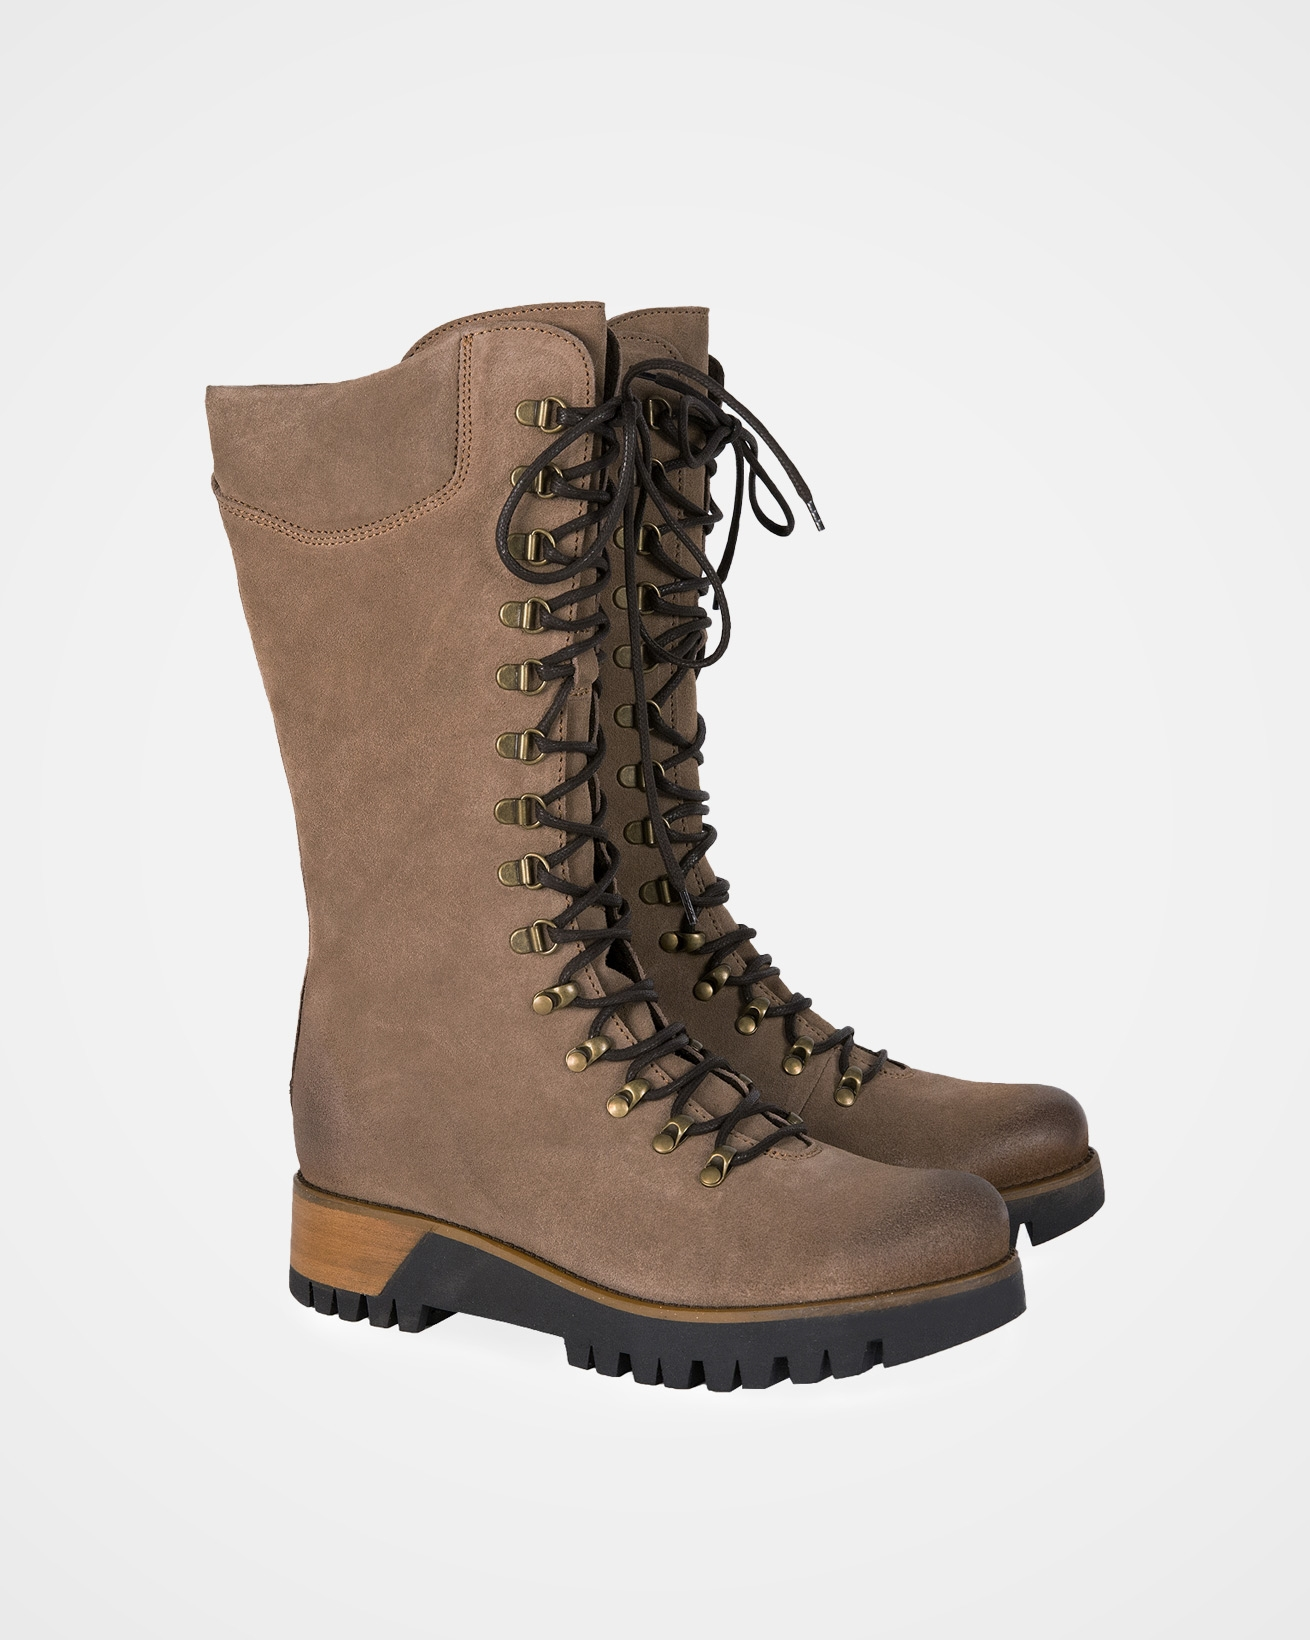 Wilderness Boots - Size 41 & 42 - Taupe - 2053